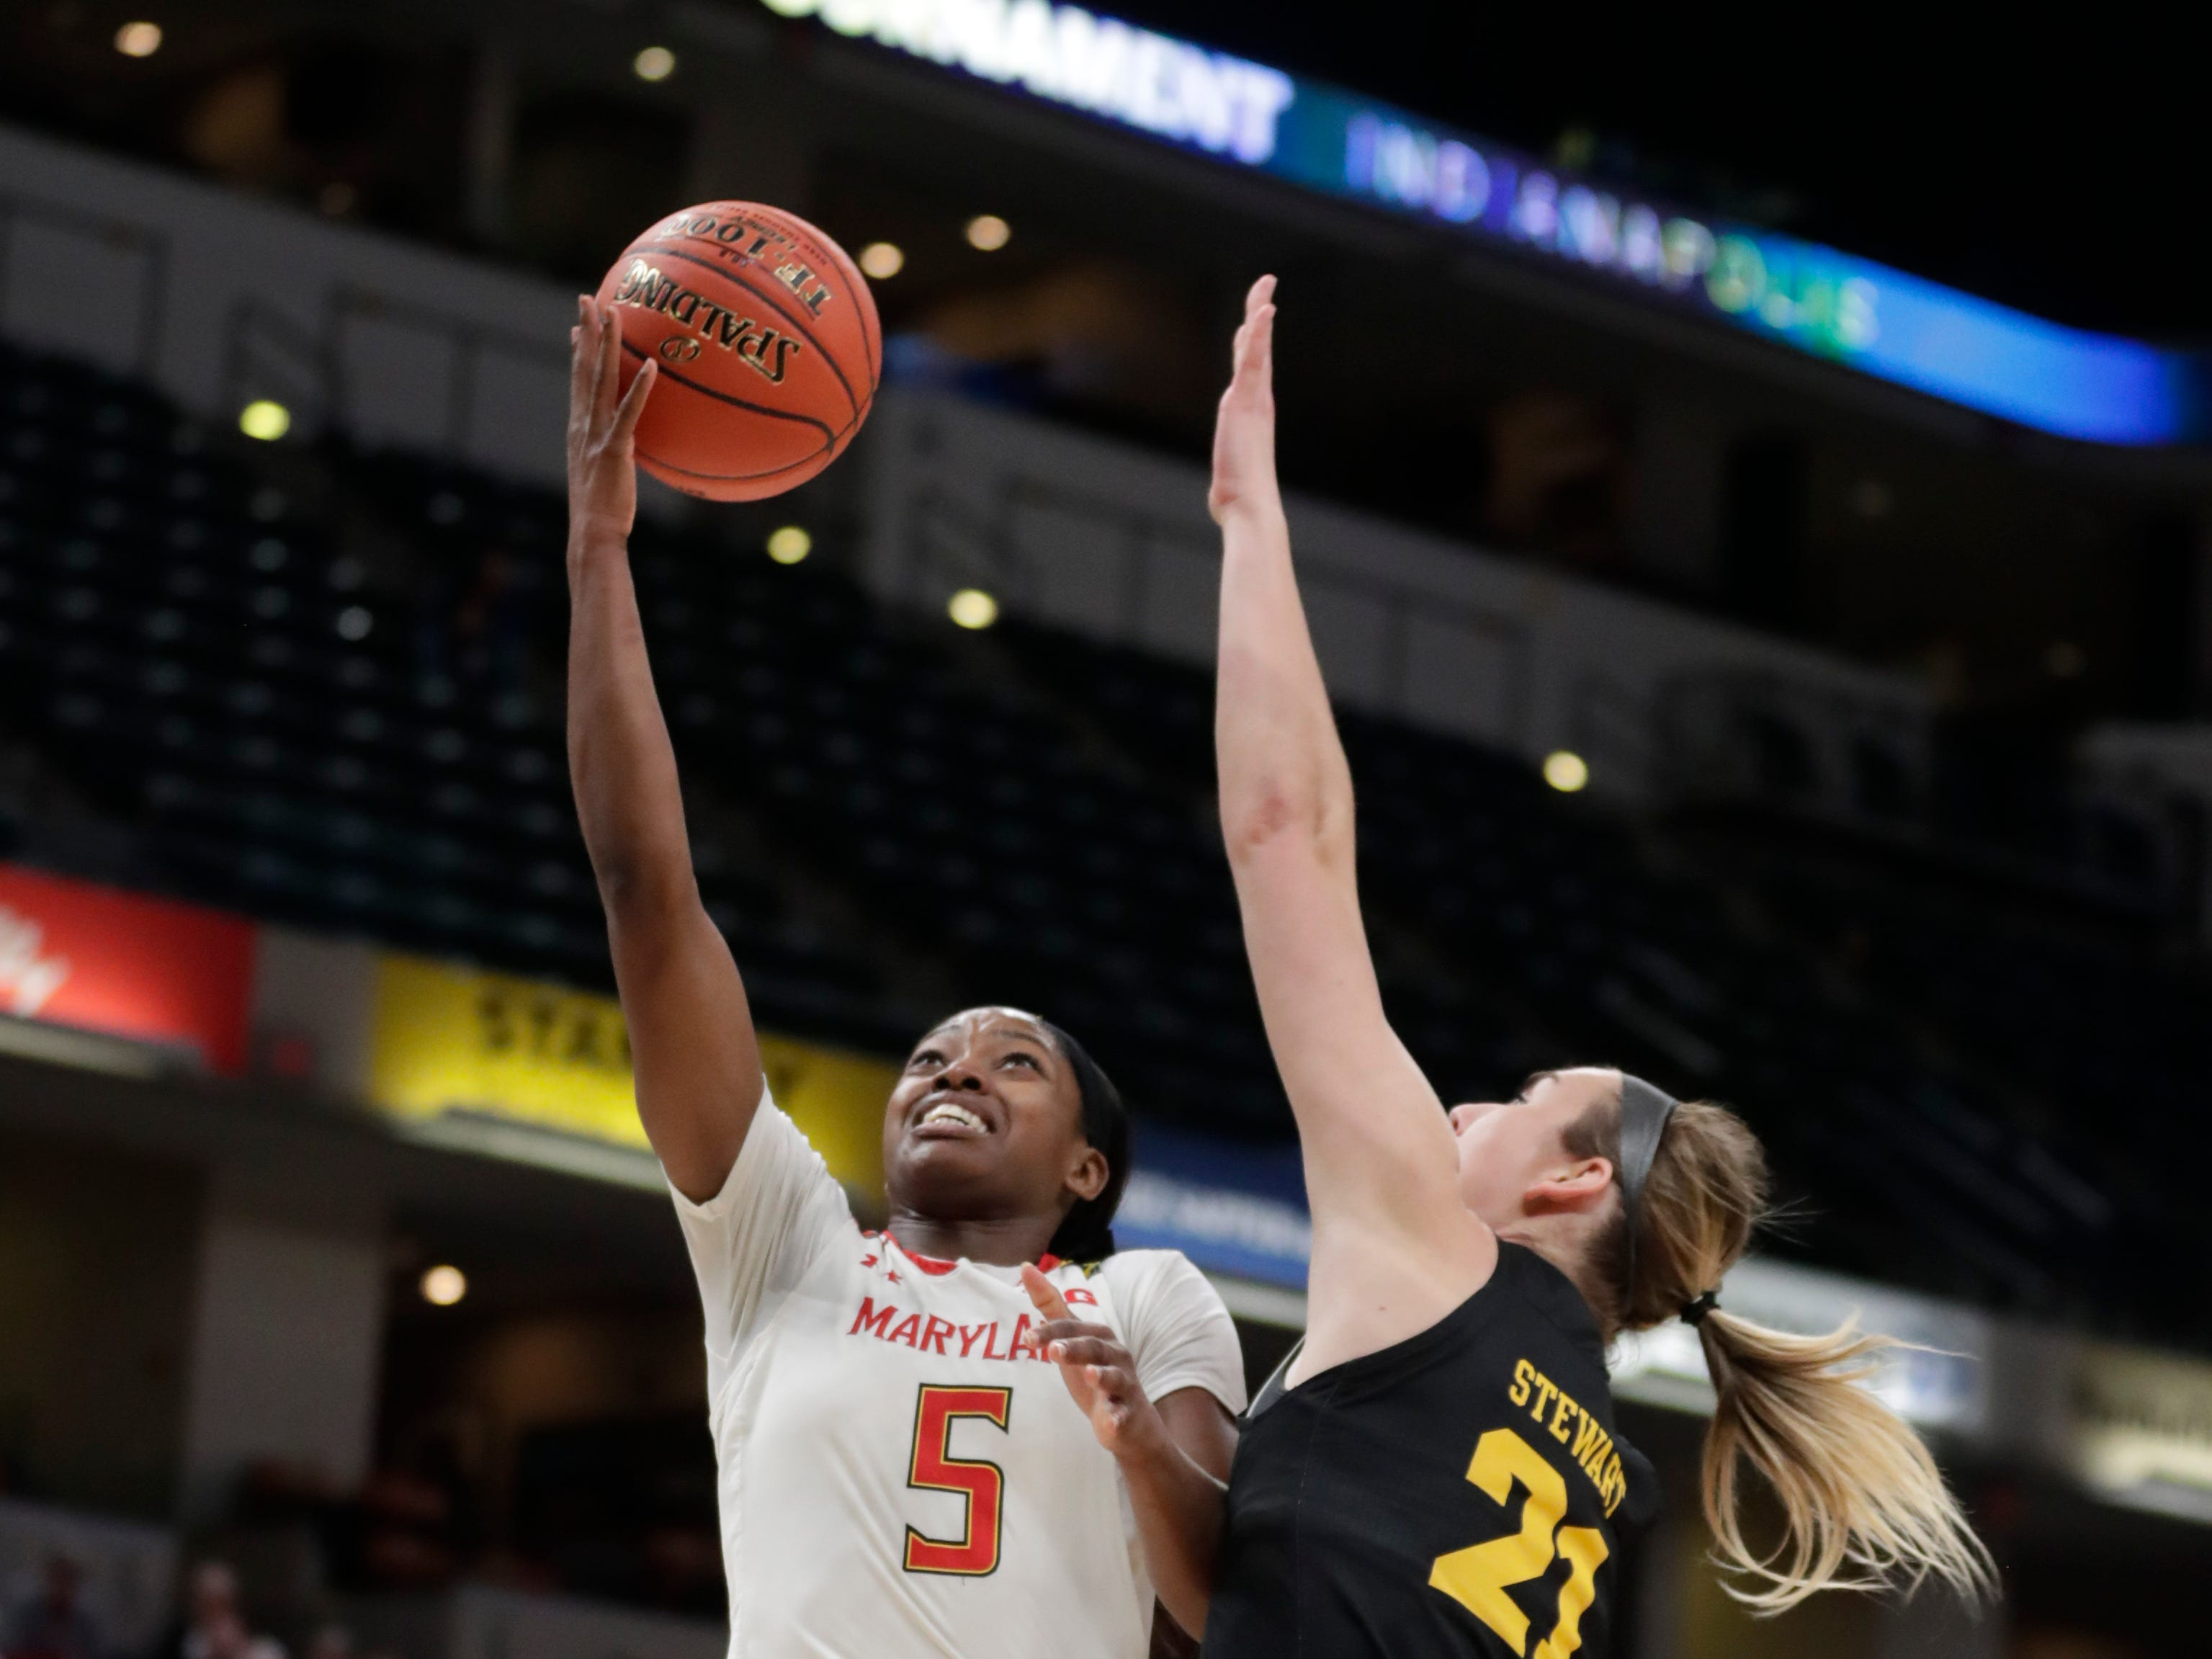 Maryland guard Kaila Charles (5) shoots over Iowa forward Hannah Stewart (21) in the first half of an NCAA college basketball championship game at the Big Ten Conference women's tournament in Indianapolis, Sunday, March 10, 2019.